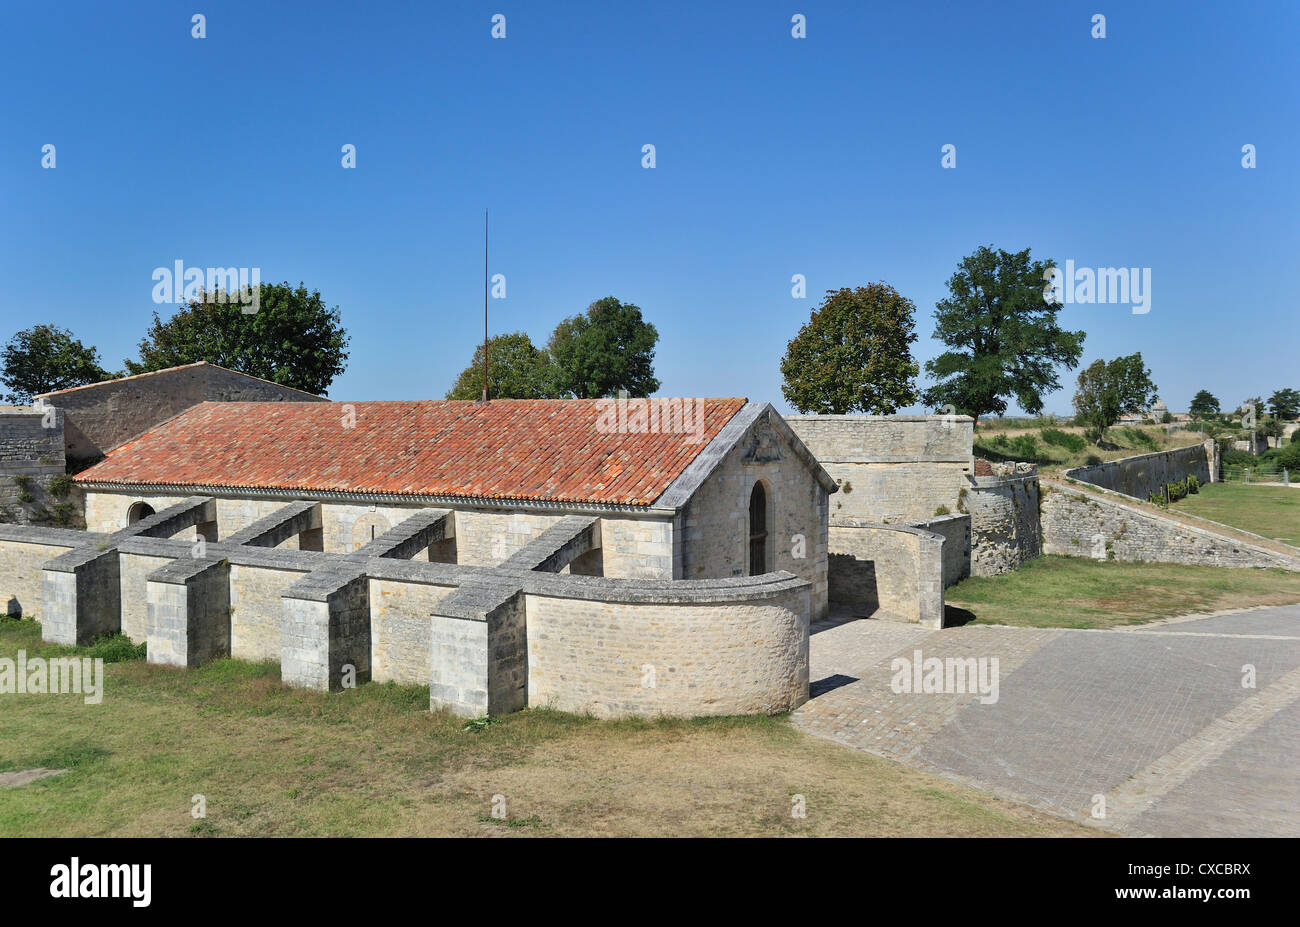 The Saint-Luc gunpowder magazine / poudrière with flying-buttresses at Brouage / Hiers-Brouage, Charente-Maritime, - Stock Image